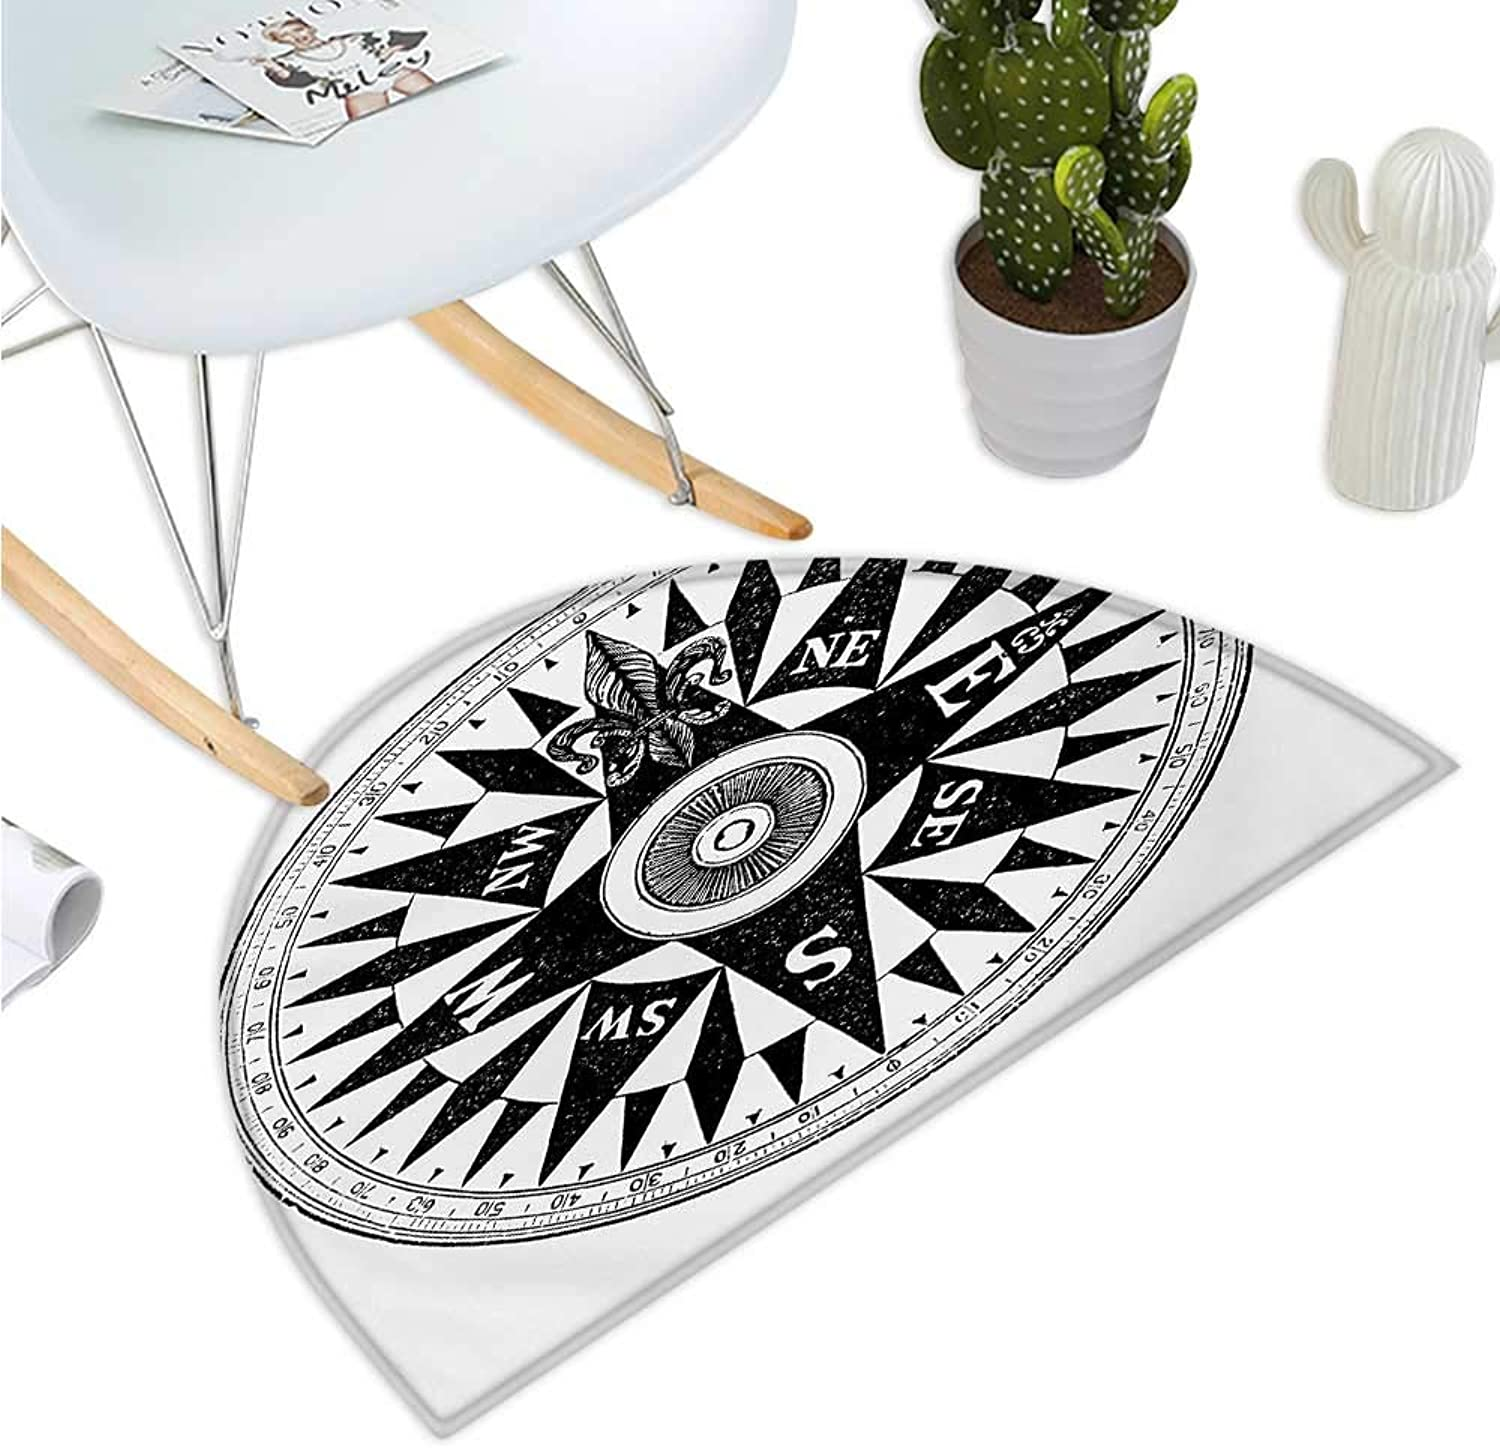 Compass Semicircle Doormat Vintage British Navy Compass in Black and White Discovery of The World Theme Entry Door Mat H 35.4  xD 53.1  Black White